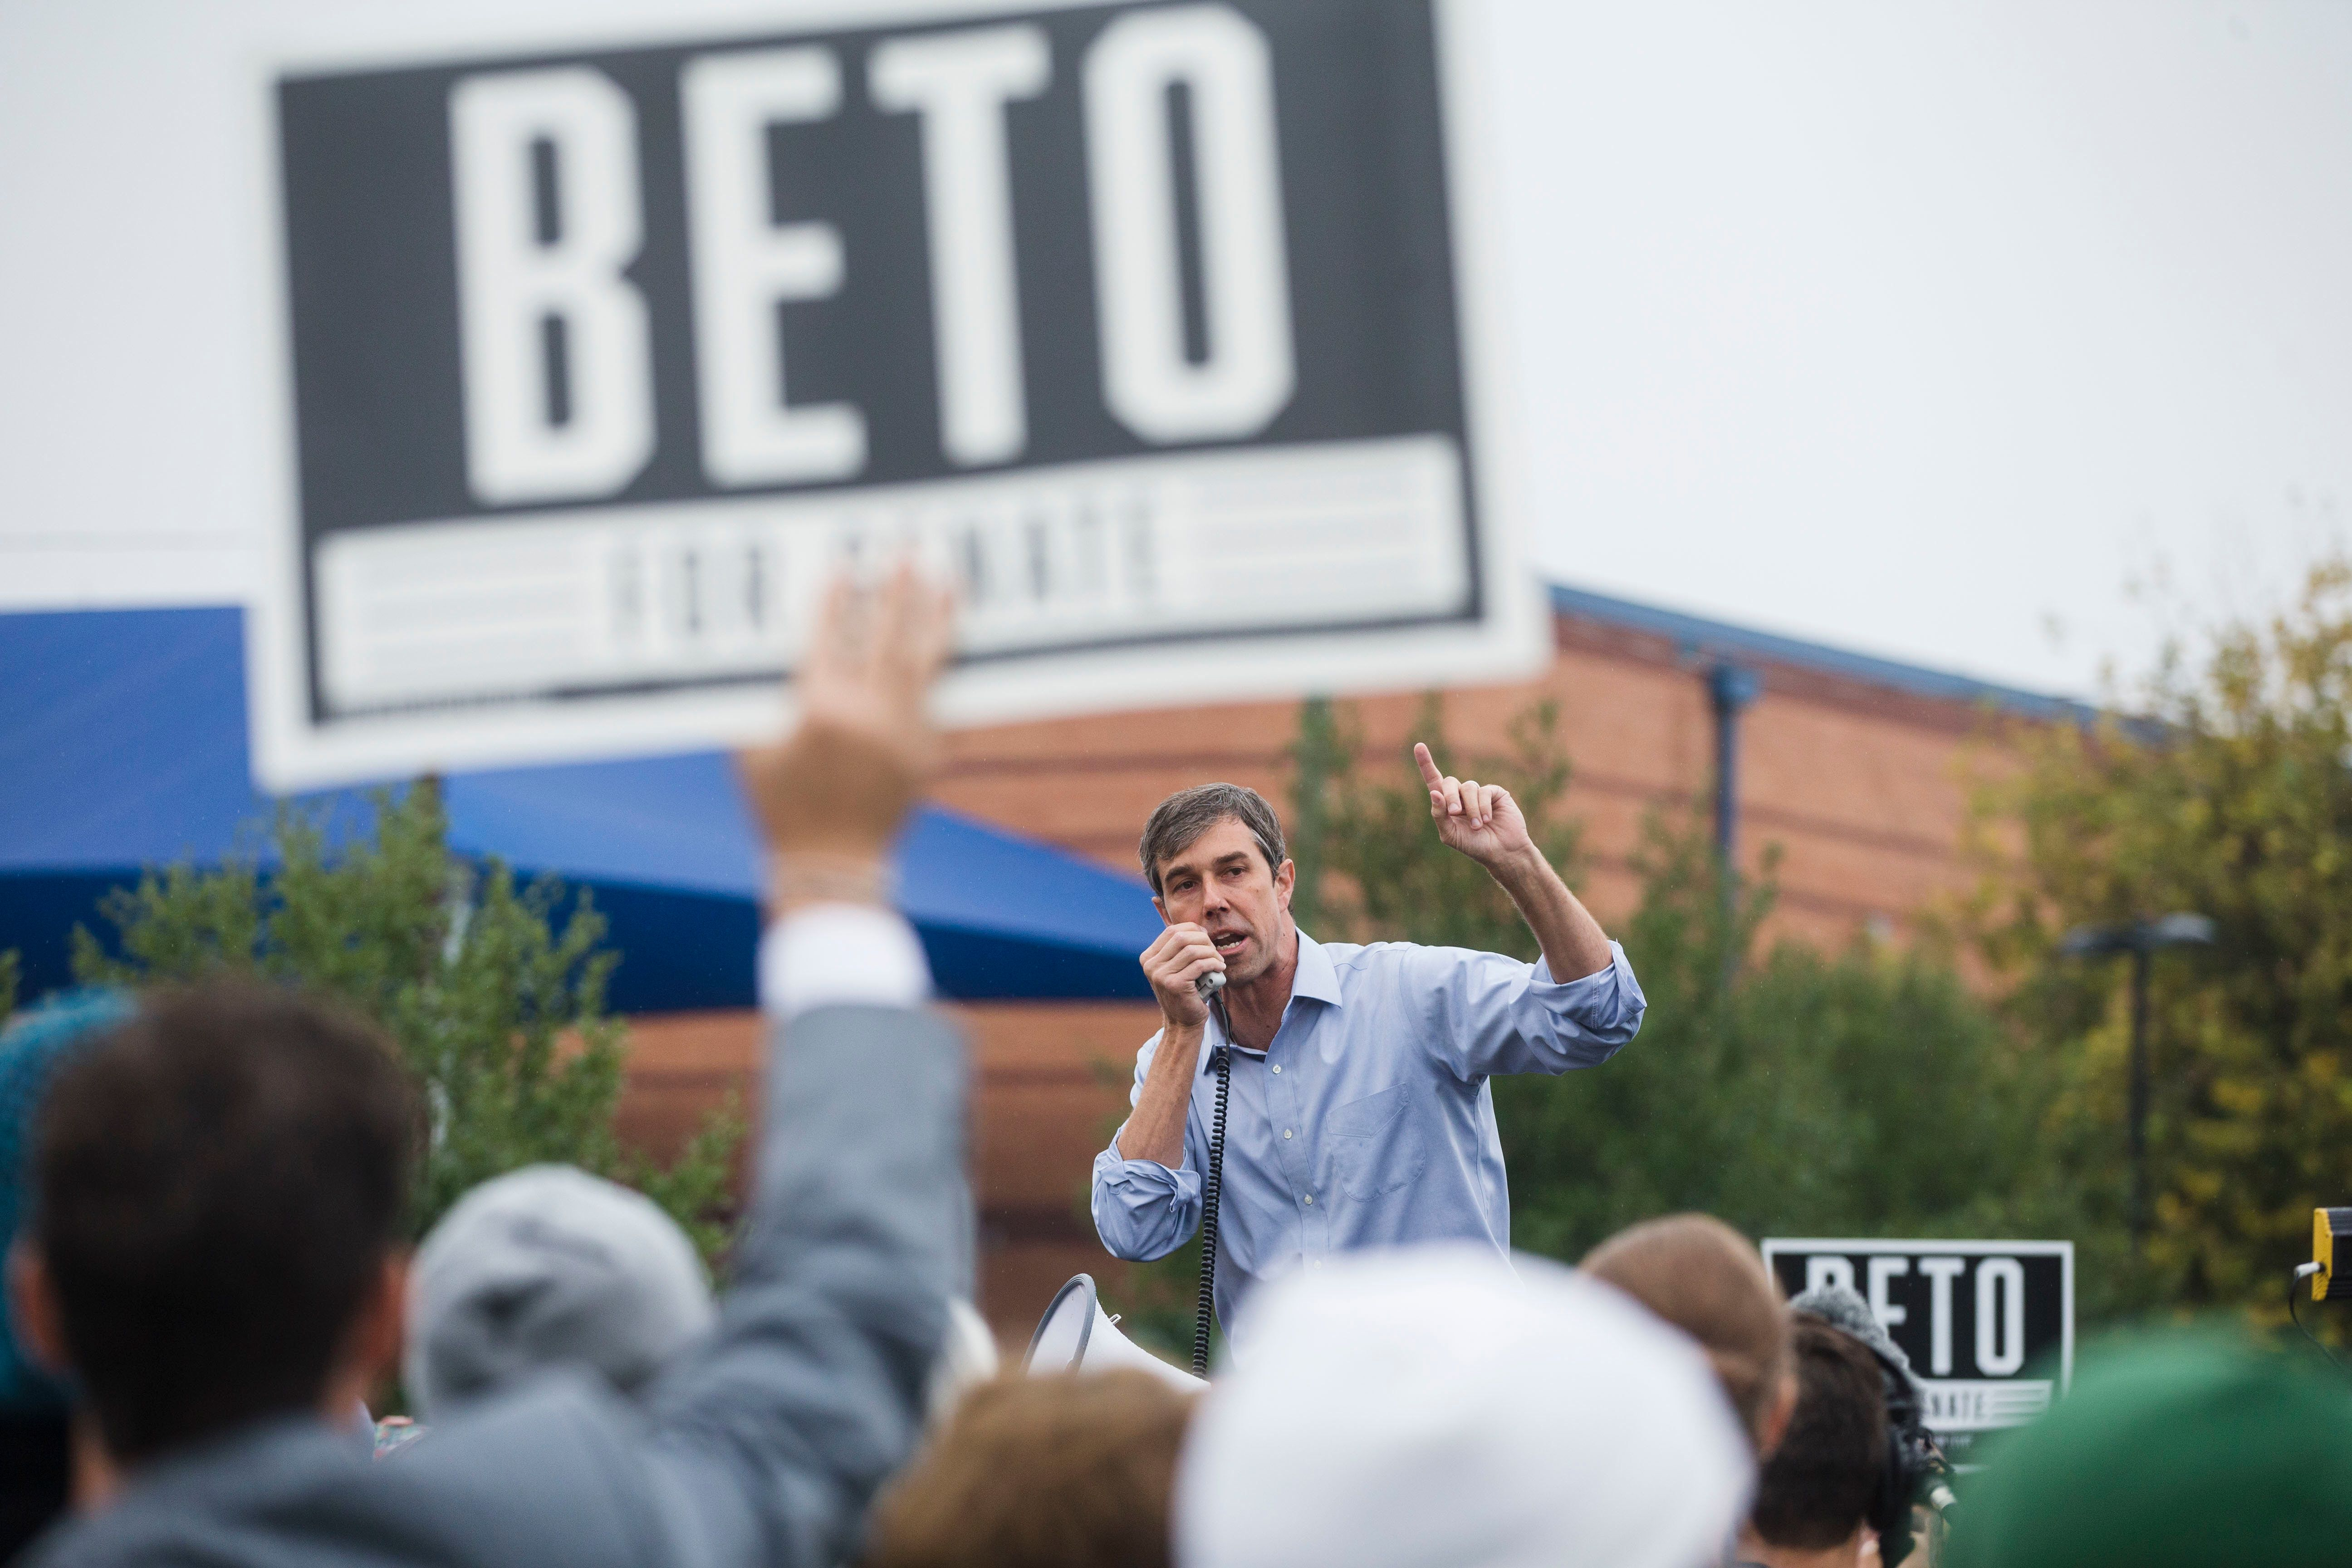 Beto O'Rourke, the 2018 Democratic Candidate for U.S. Senate in Texas, speaks during a pop-up 'Vote with Beto' event at Houston School Park on Wednesday, Oct. 24, 2018, in Austin, TX. Beto held several events near early polling locations across Austin. (Amanda Voisard/Austin American-Statesman via AP)